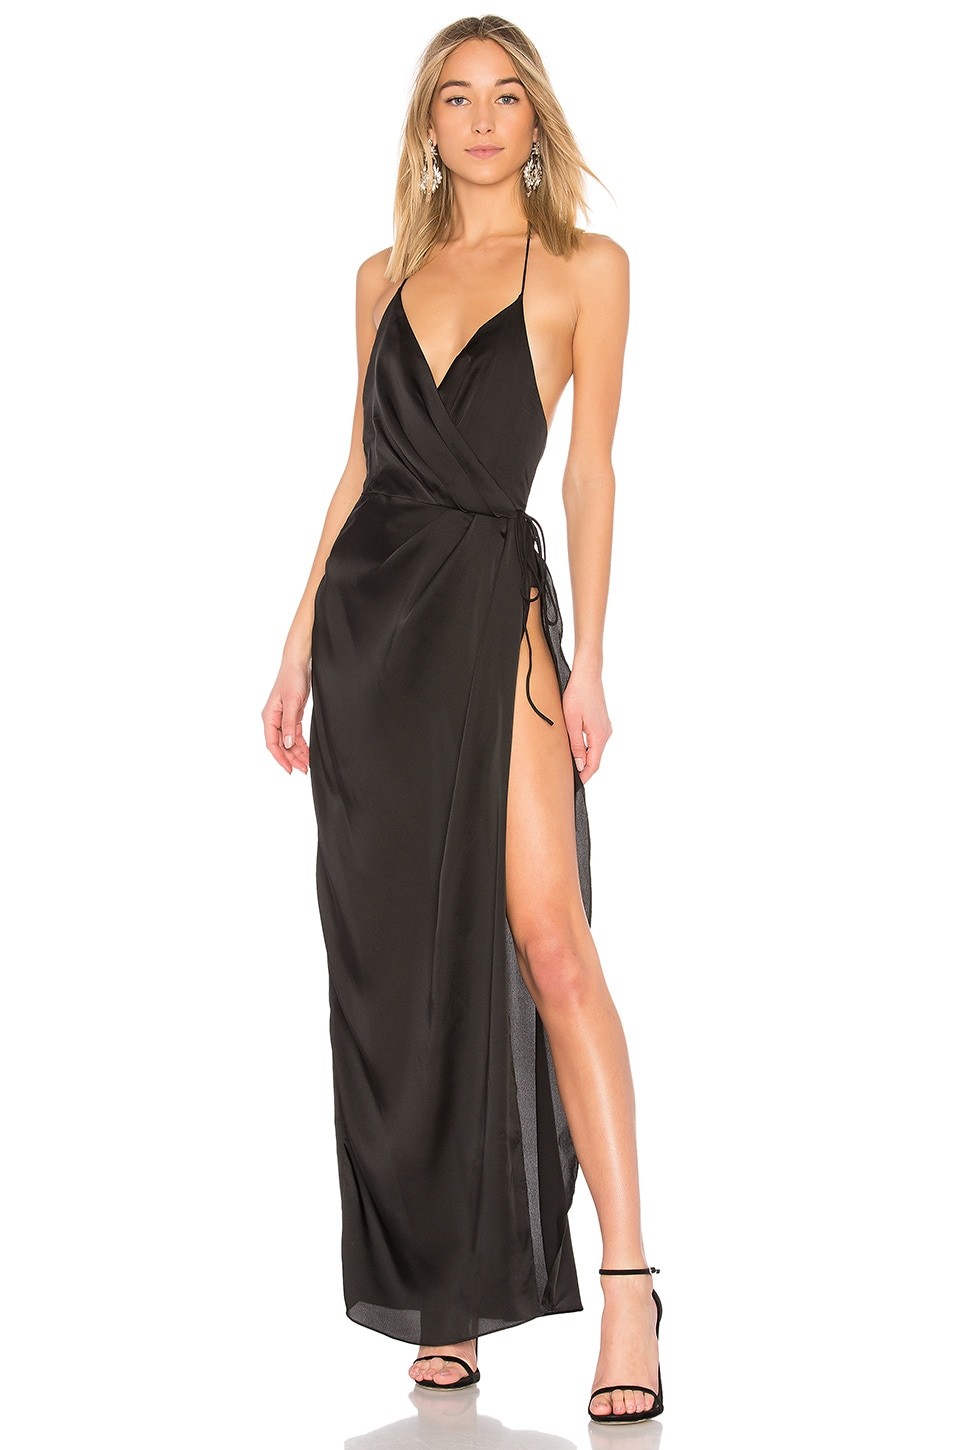 X By Nbd X BY NBD SO ANXIOUS GOWN IN BLACK.